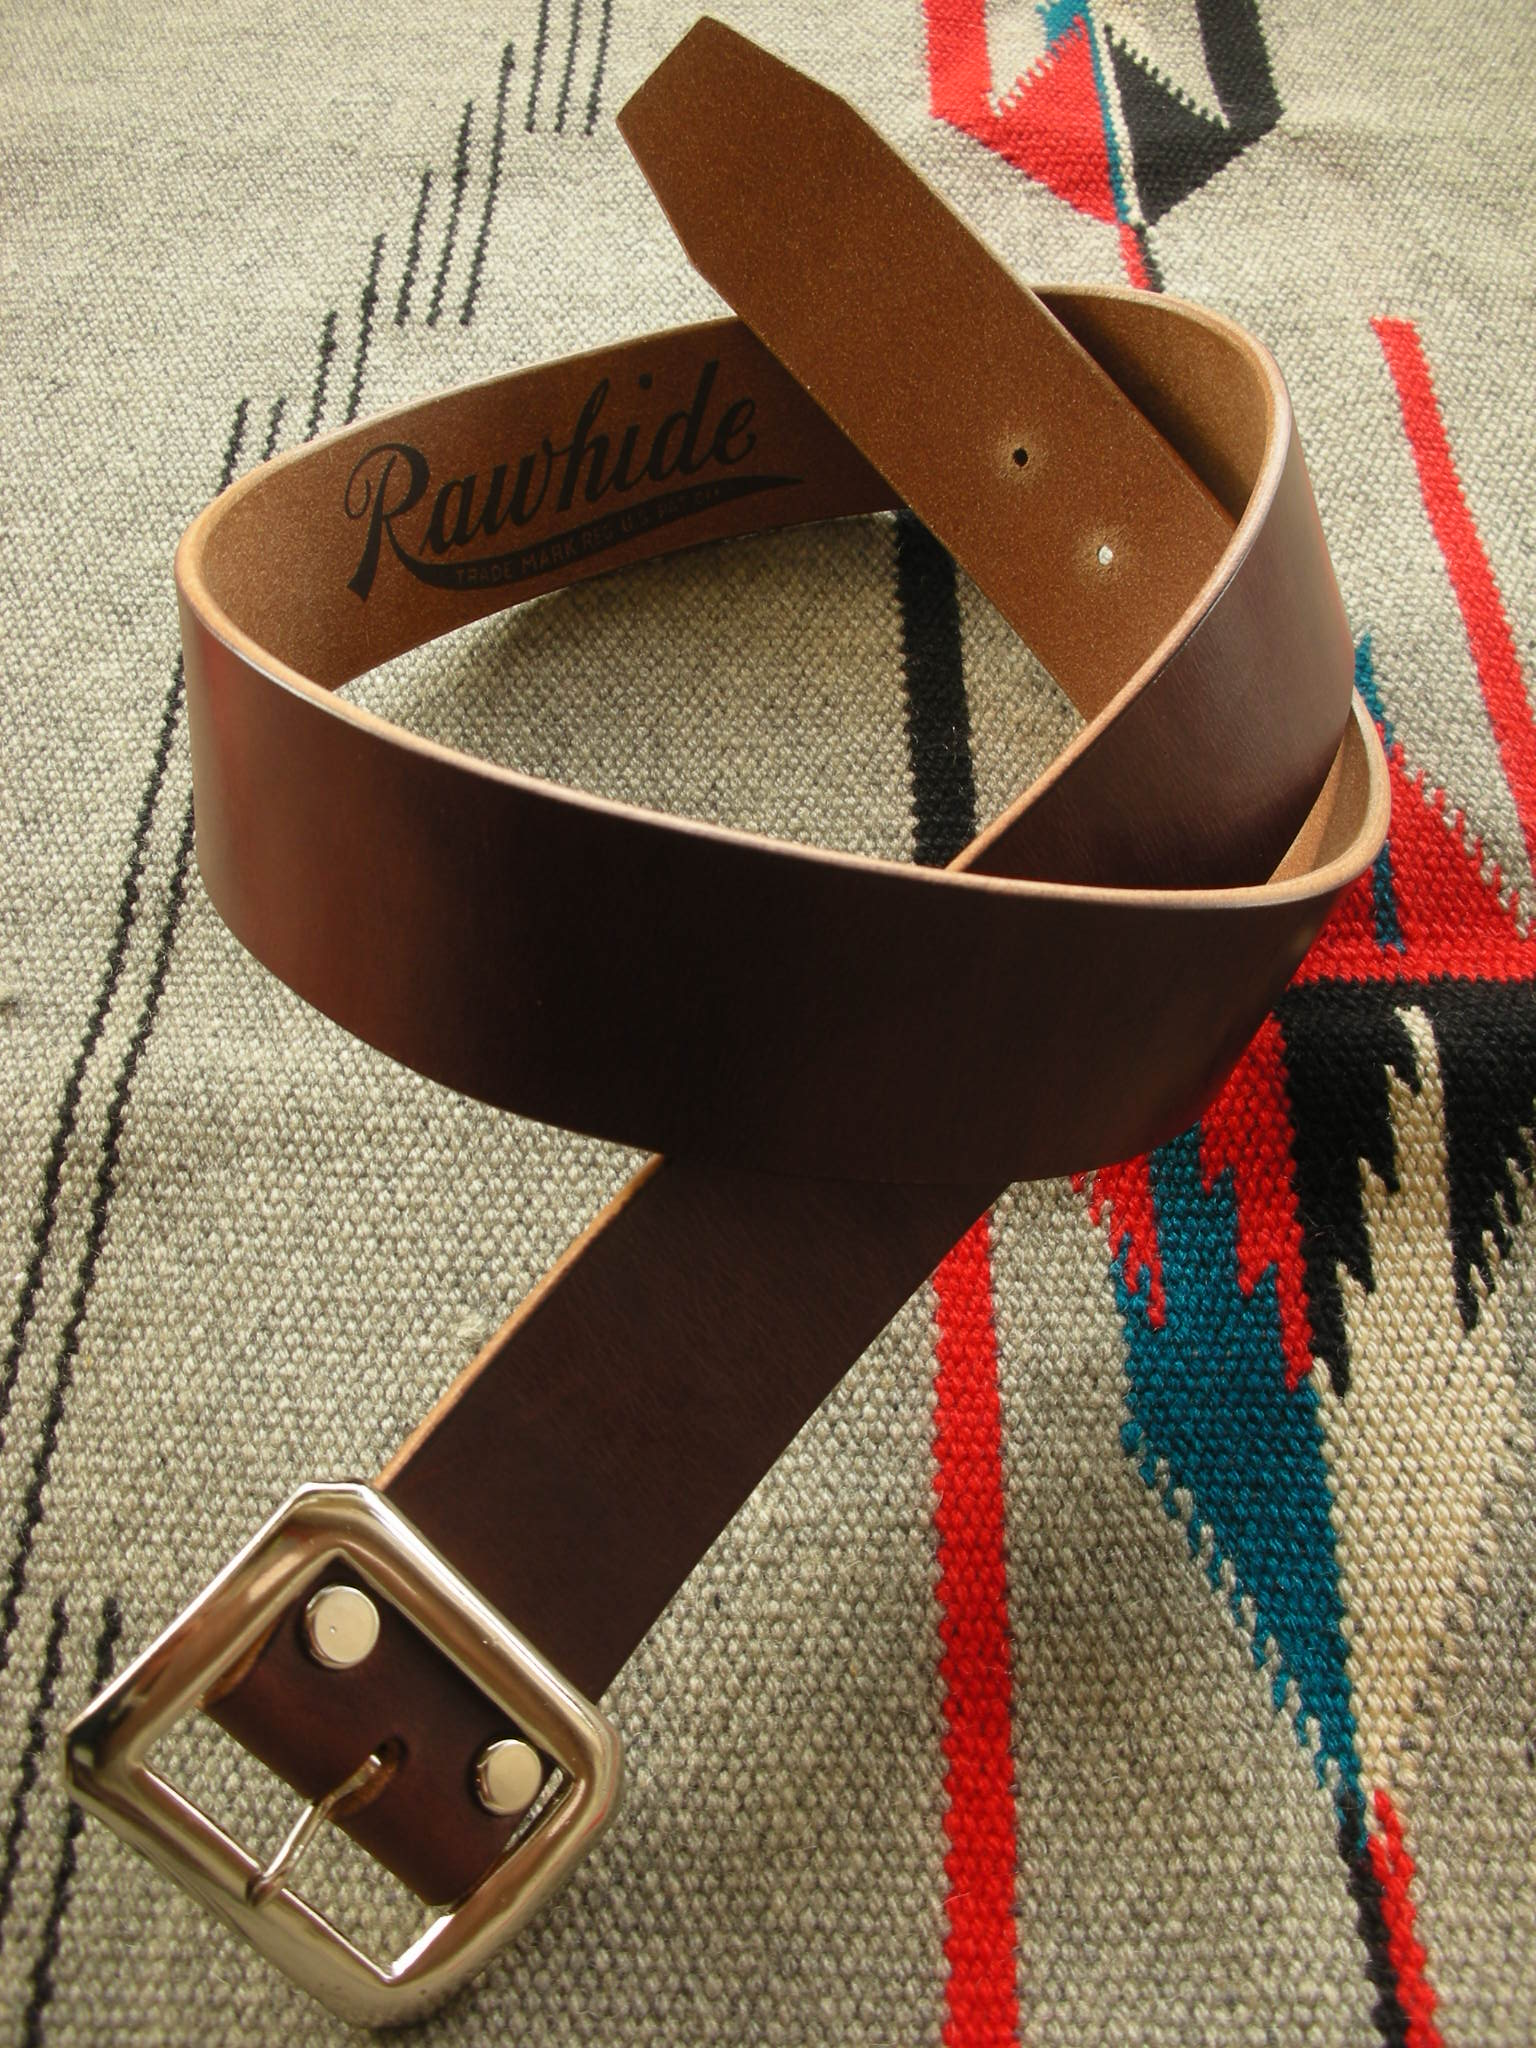 RAWHIDE UK BRIDLE BELTS & WALLETS_c0187684_1558535.jpg